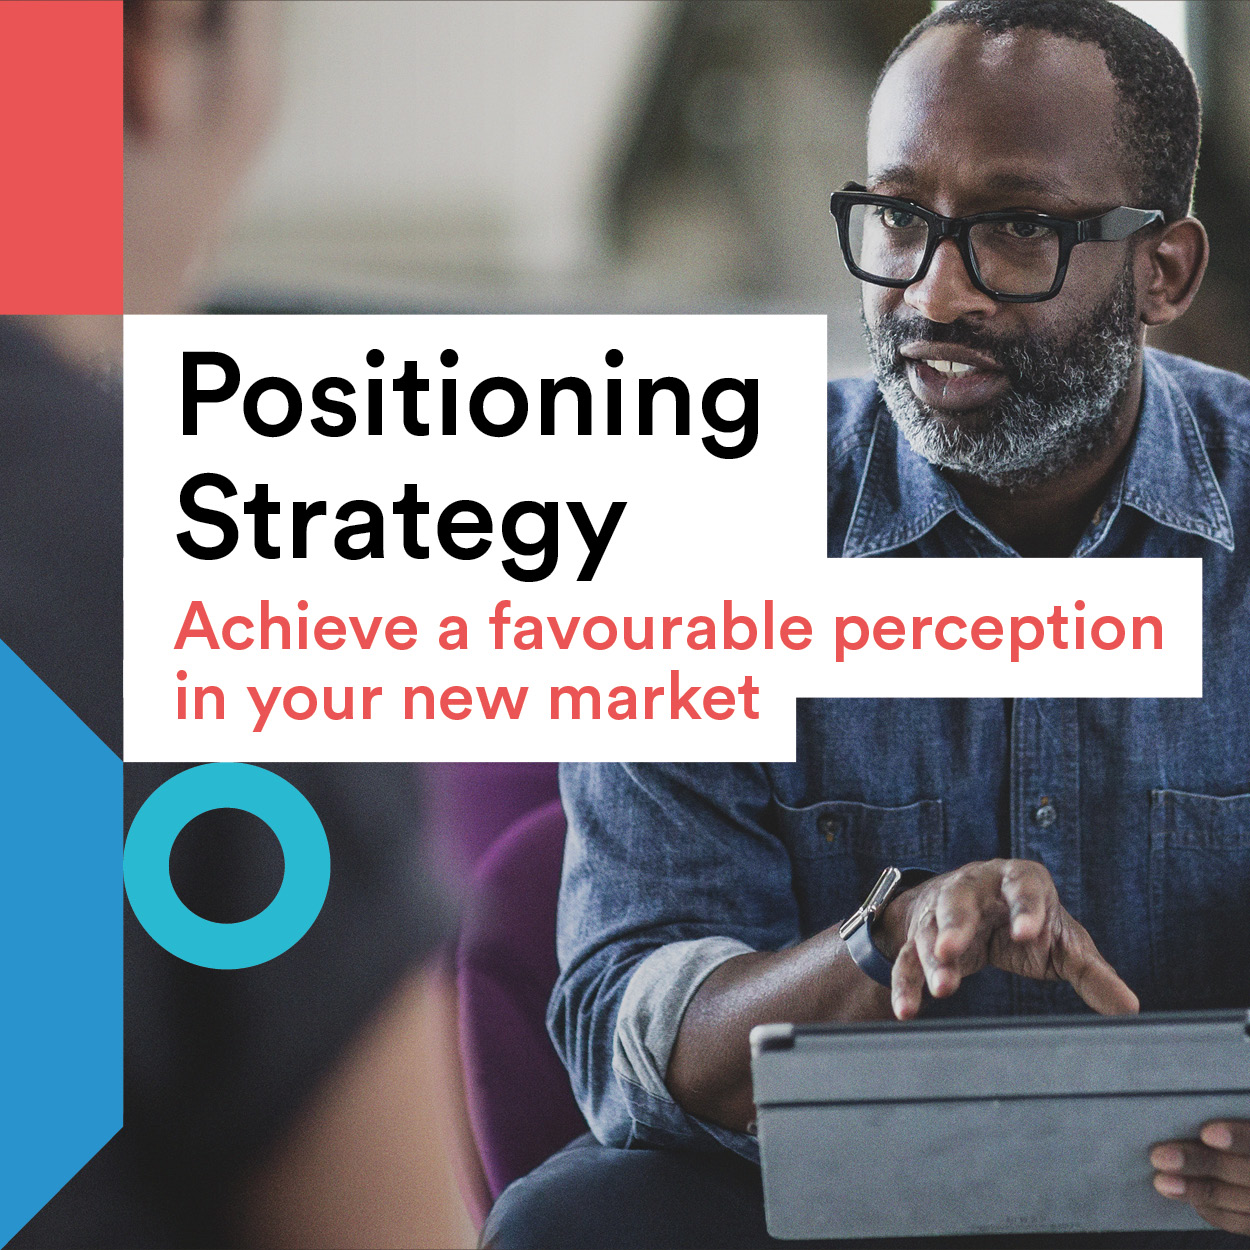 Positioning Strategy title and businessman